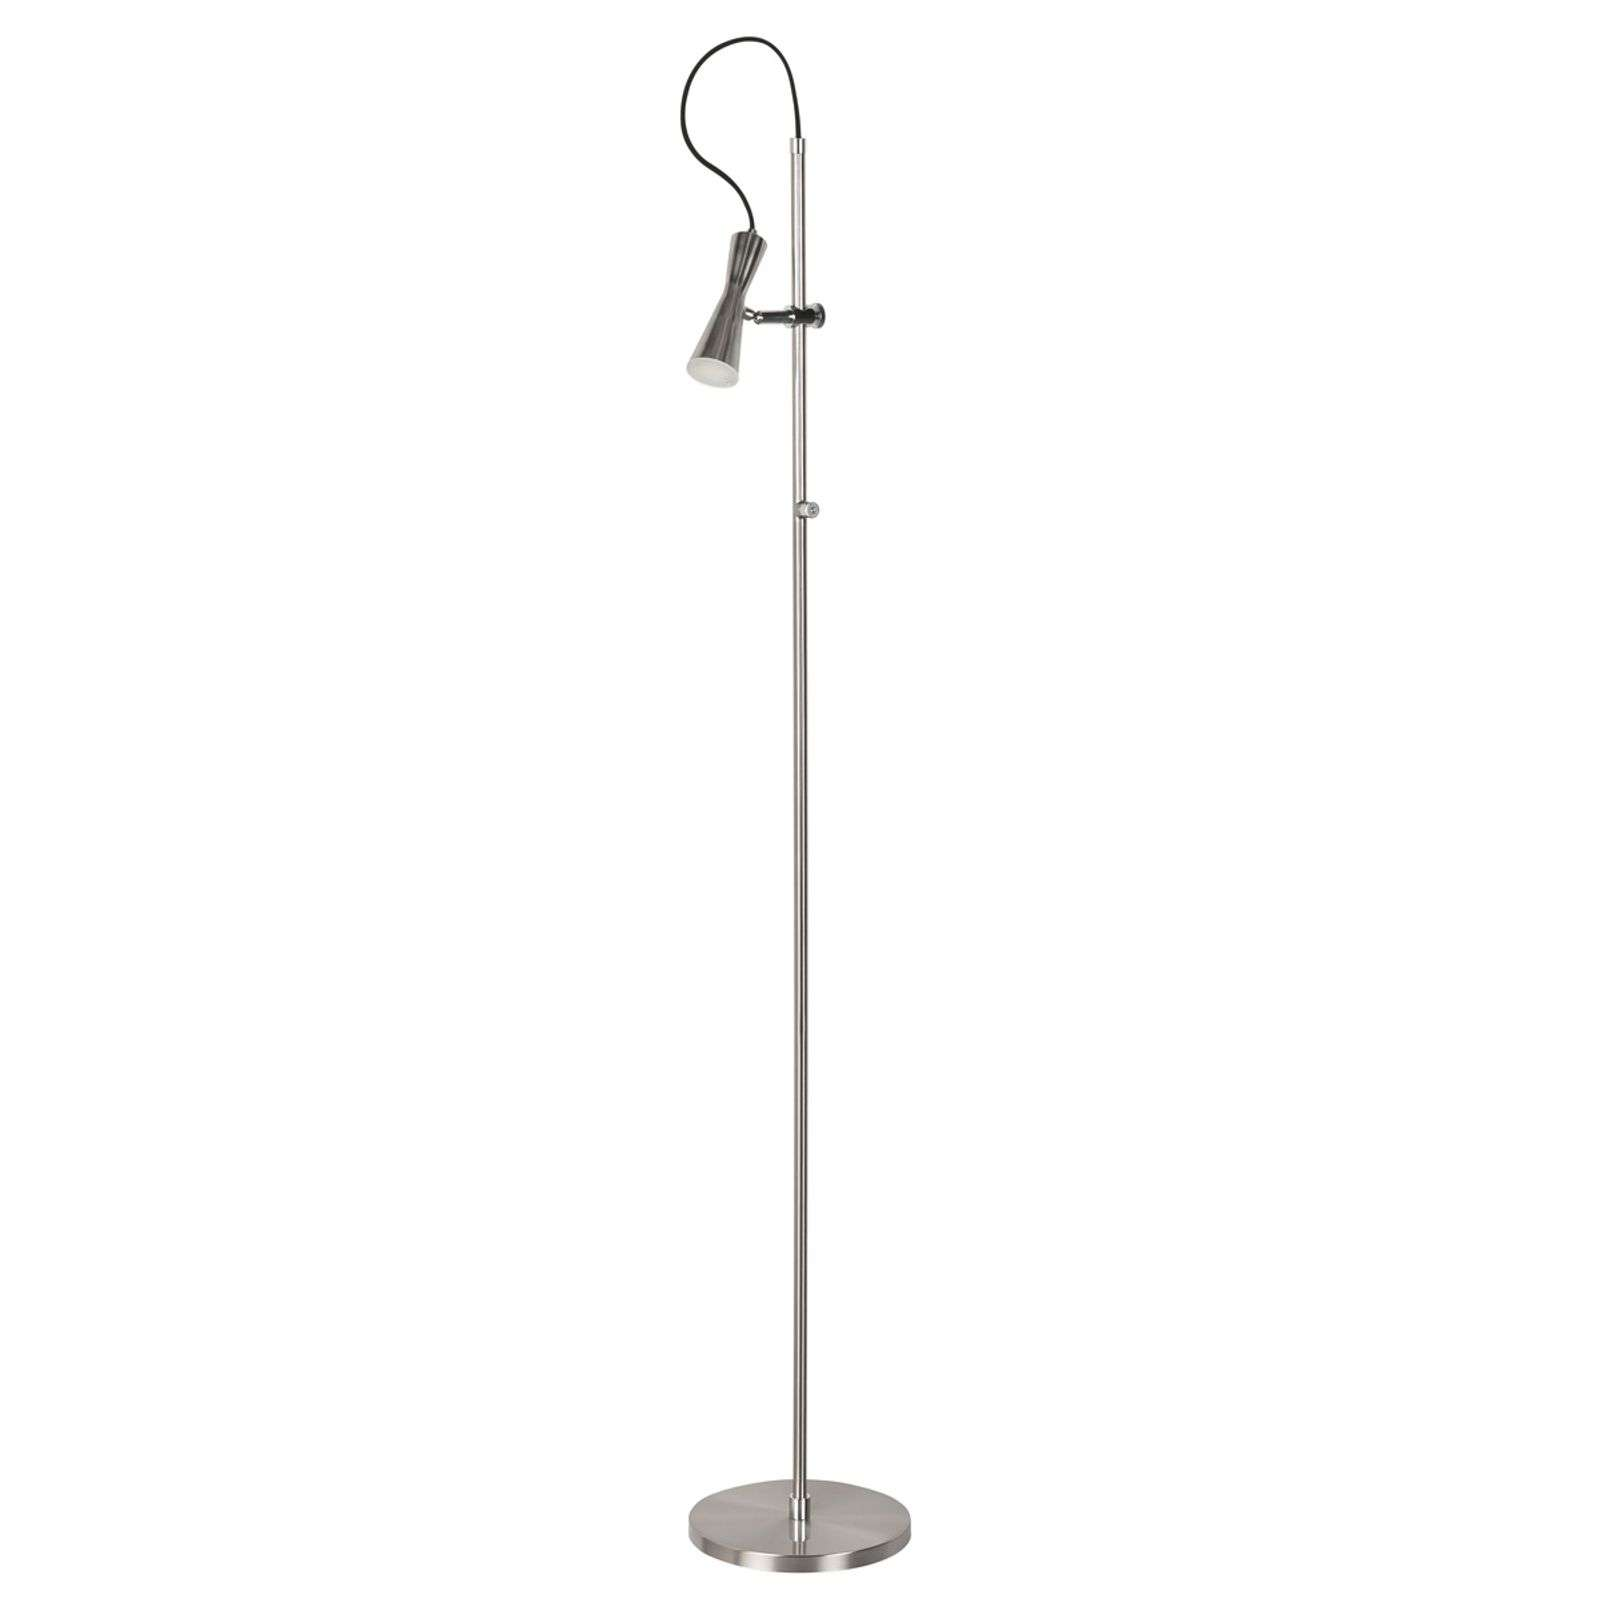 Move - lampadaire LED avec talent, nickel